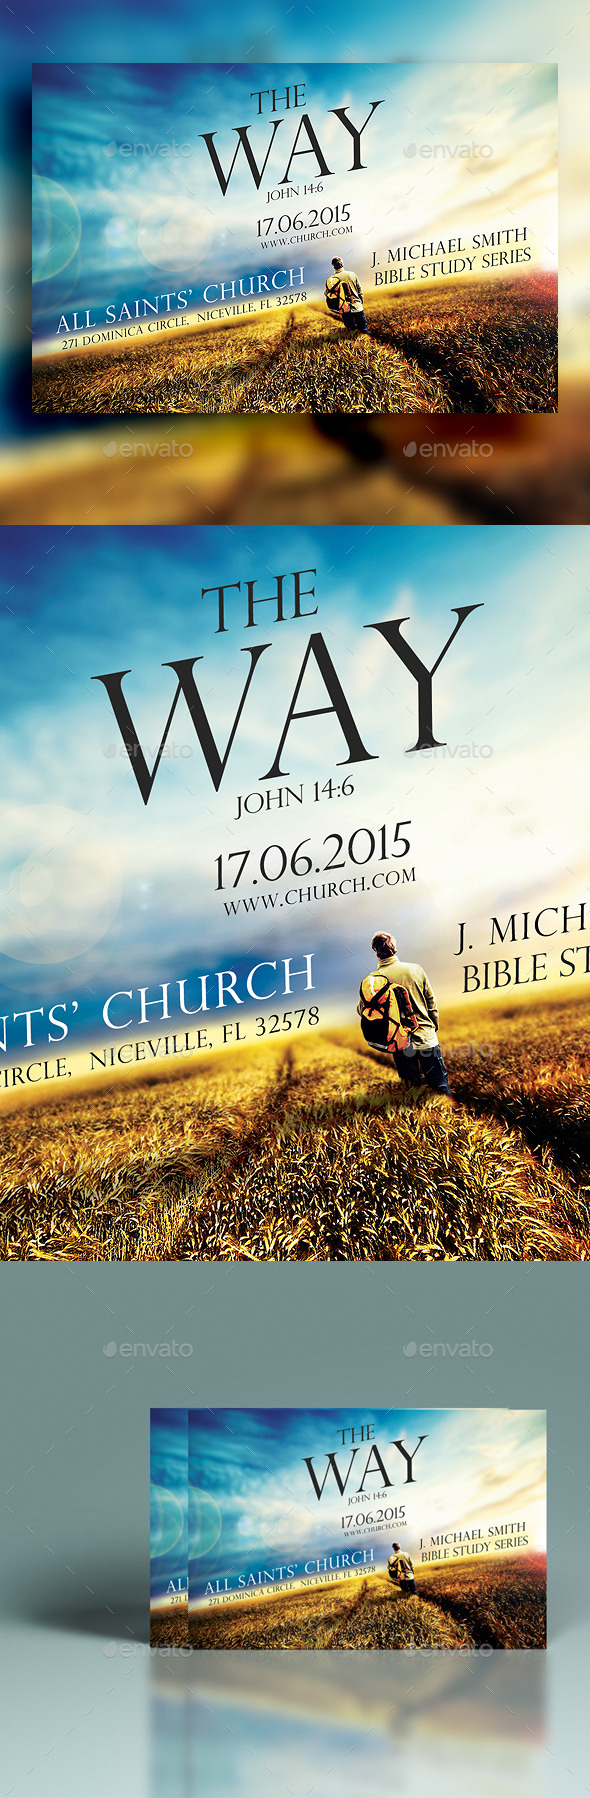 GraphicRiver The Way Church Flyer 11941459